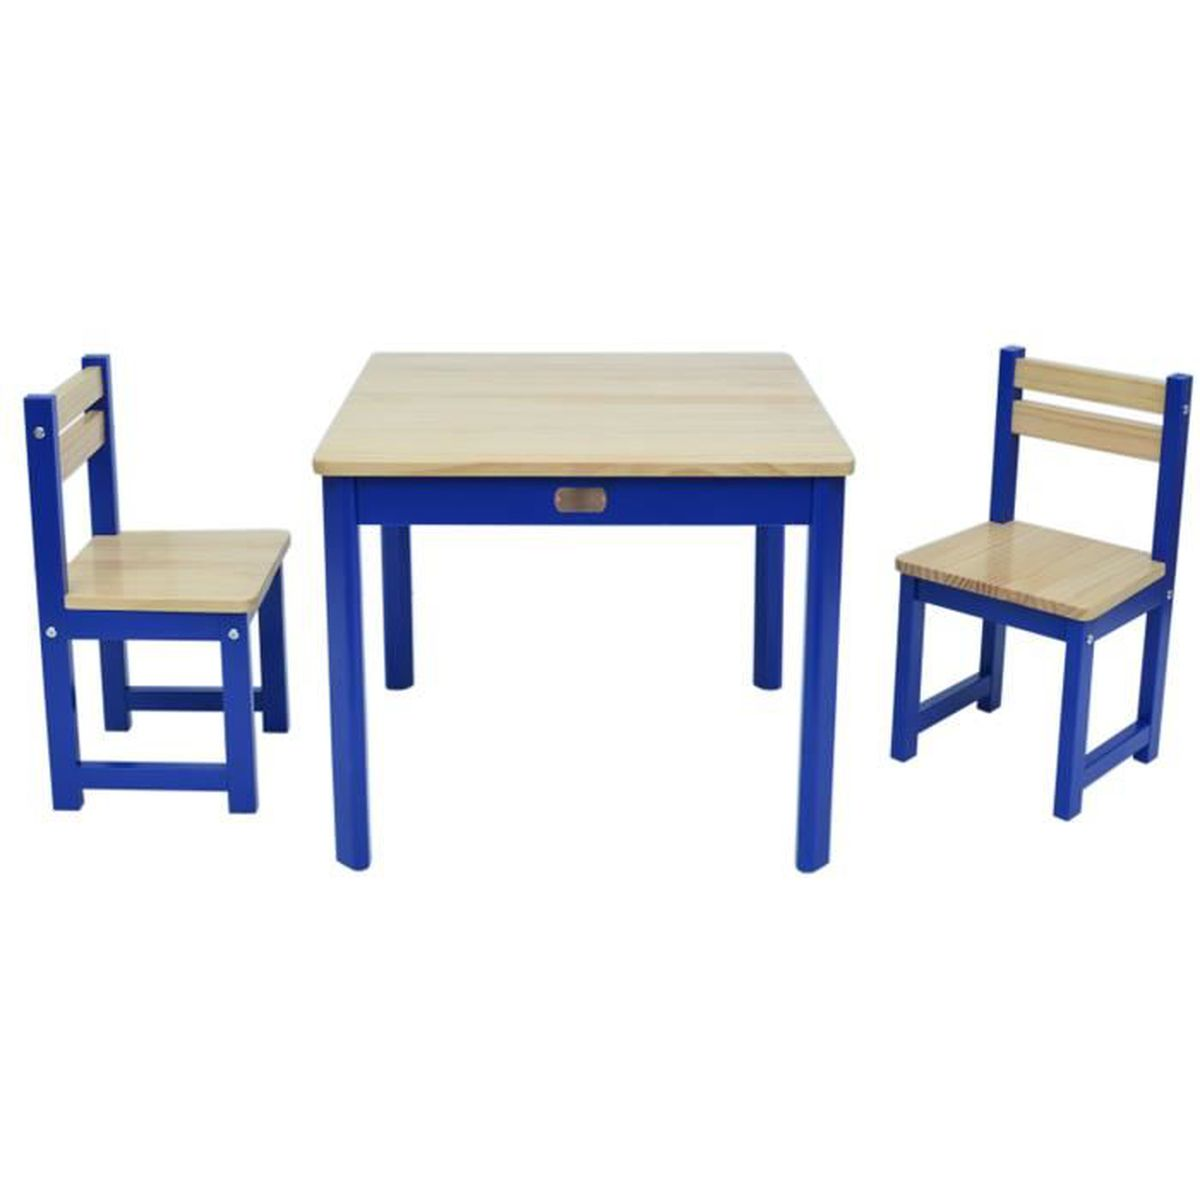 ensemble table et 2 chaises pour enfant en bois coloris bleu achat vente tour de lit b b. Black Bedroom Furniture Sets. Home Design Ideas